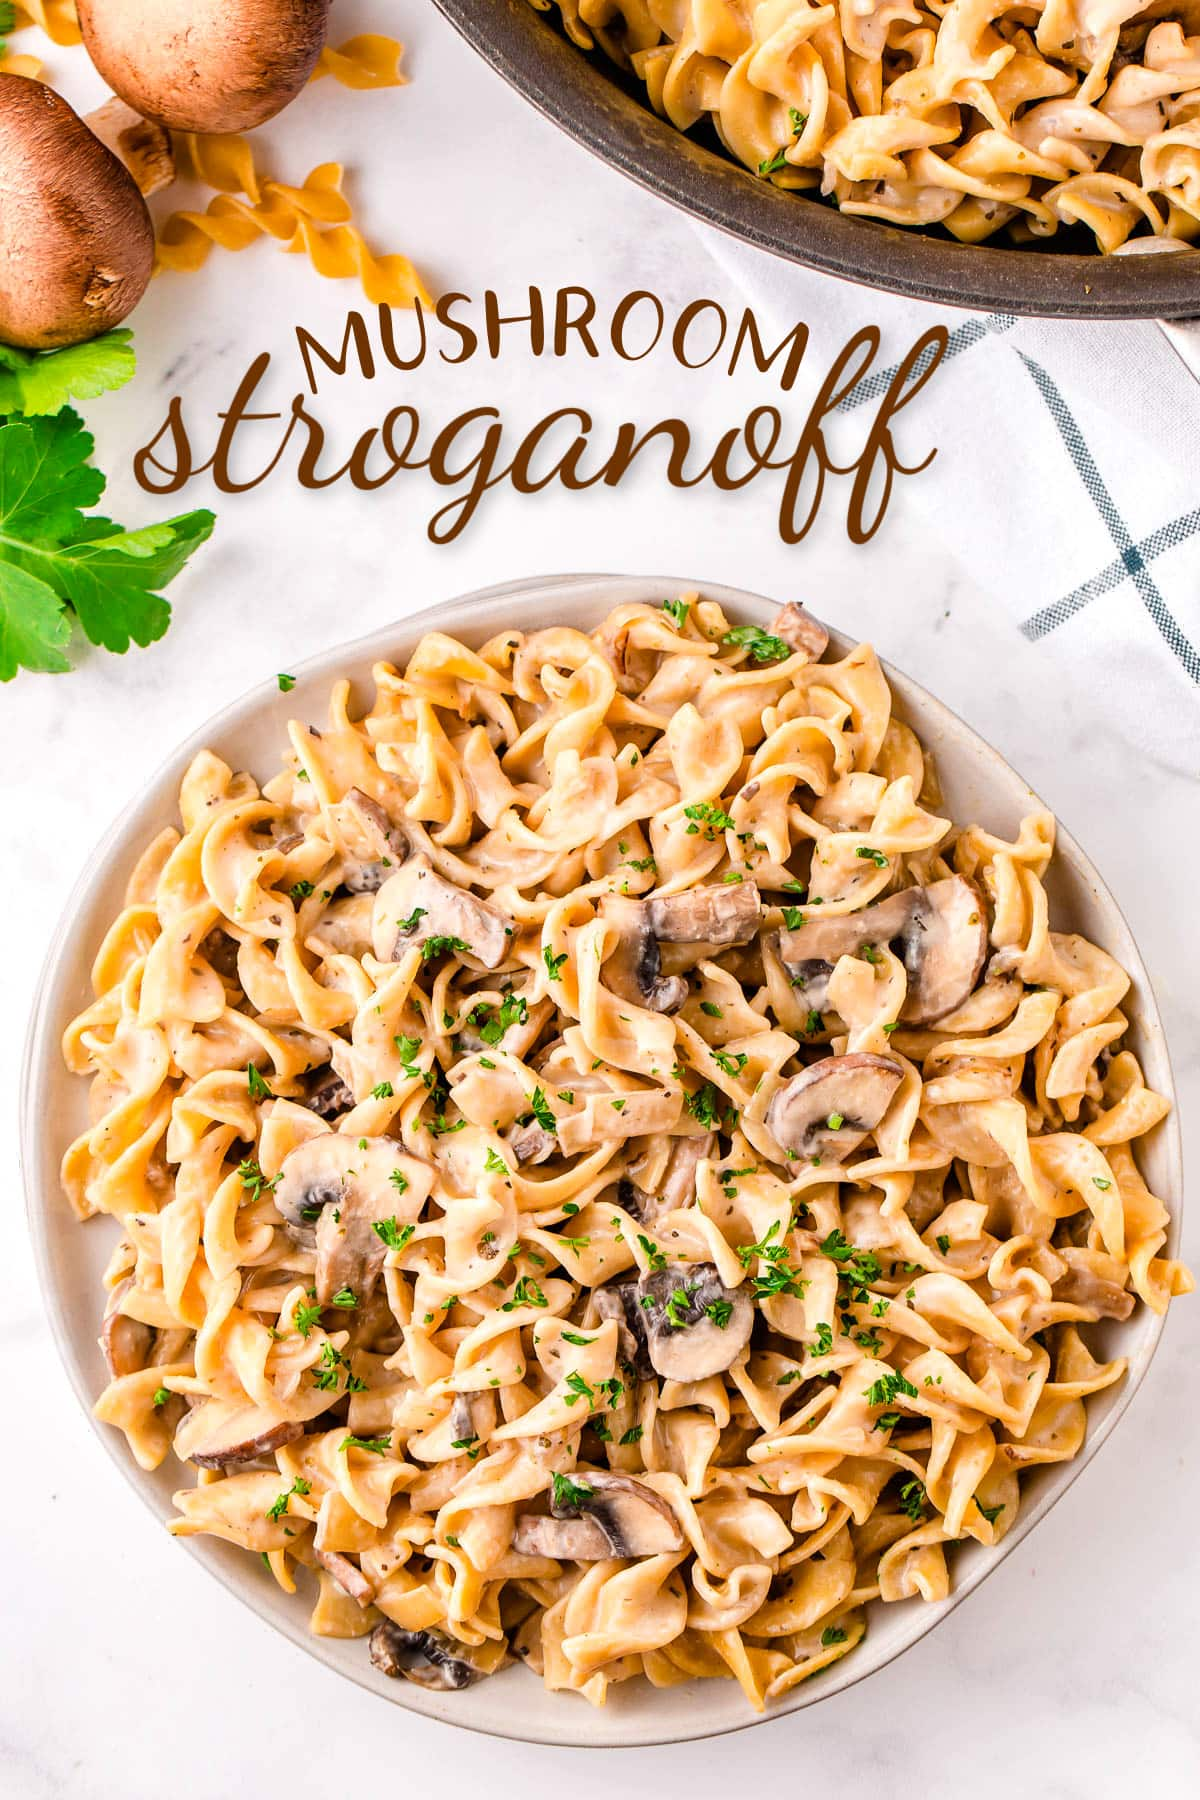 top down view of mushroom stroganoff piled high on round white plate garnished with parsley. text overlay at top of image.